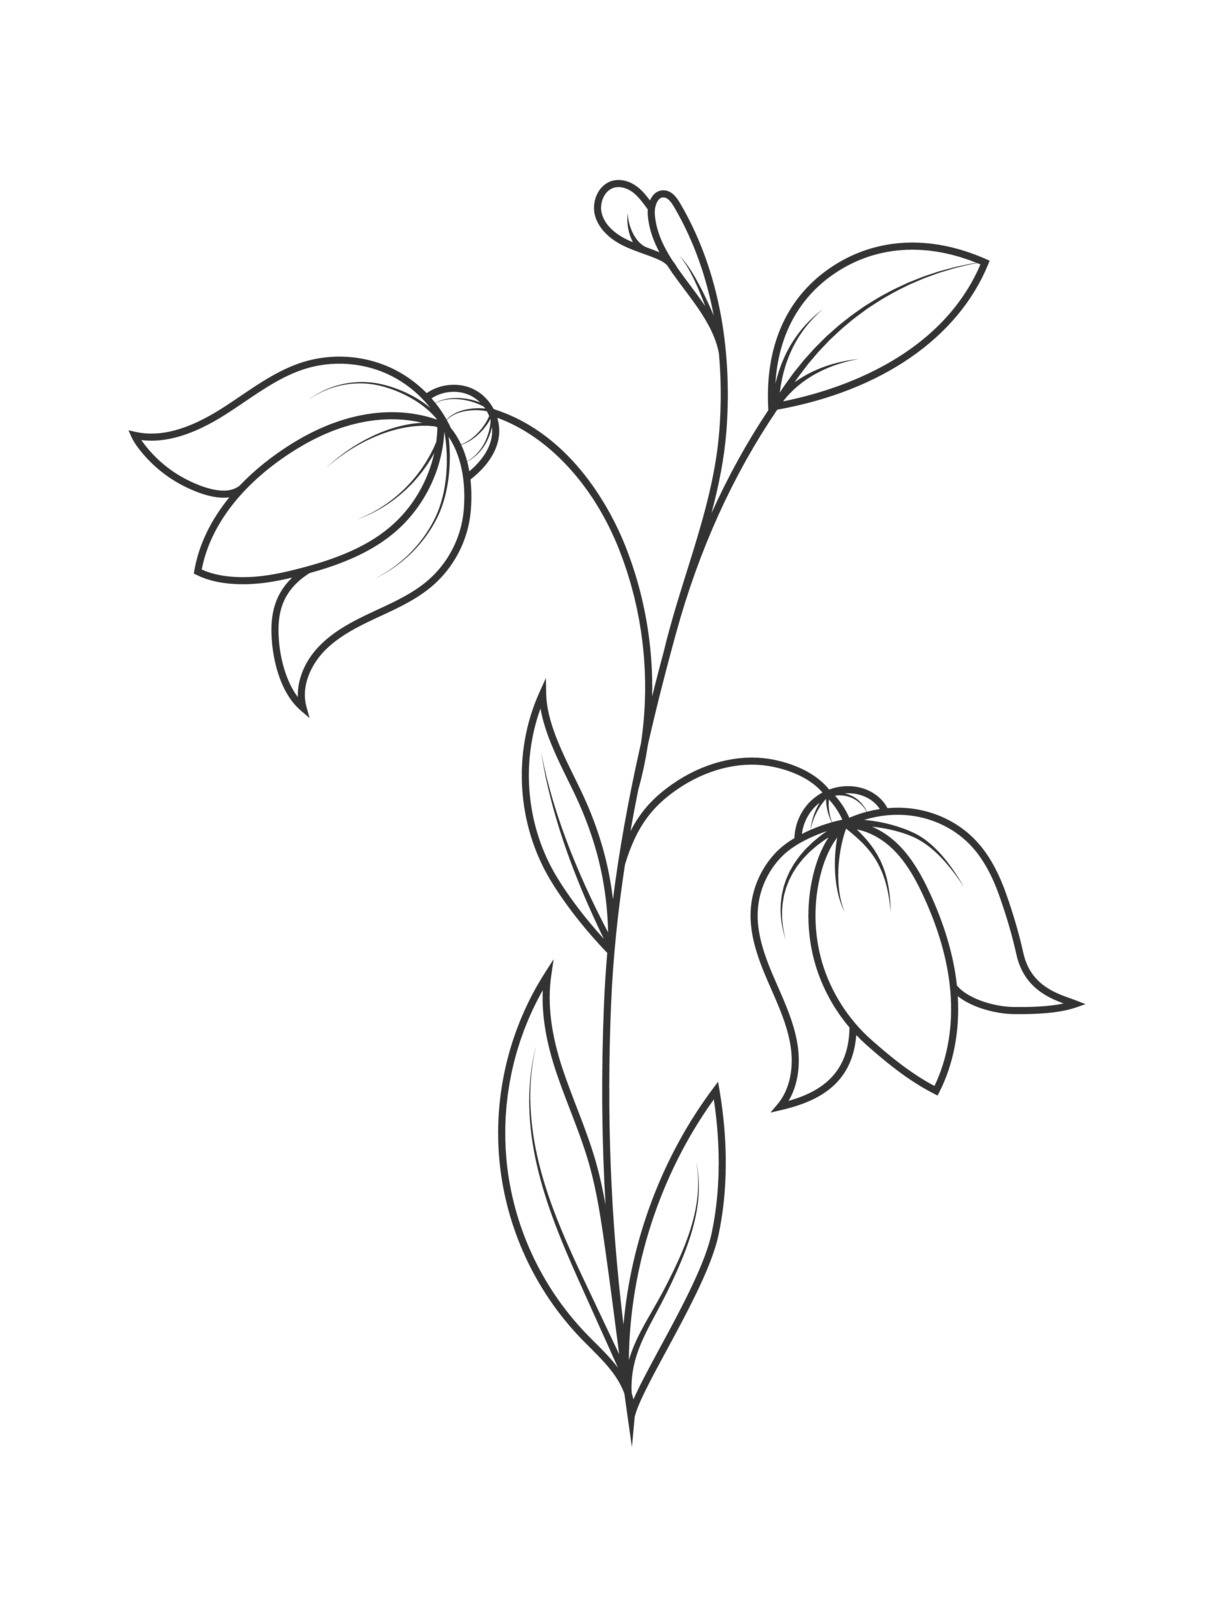 Empty outline of a flower with petals. A Doodle-style outline is isolated on a white background. Flat design for coloring books, postcards and decoration.